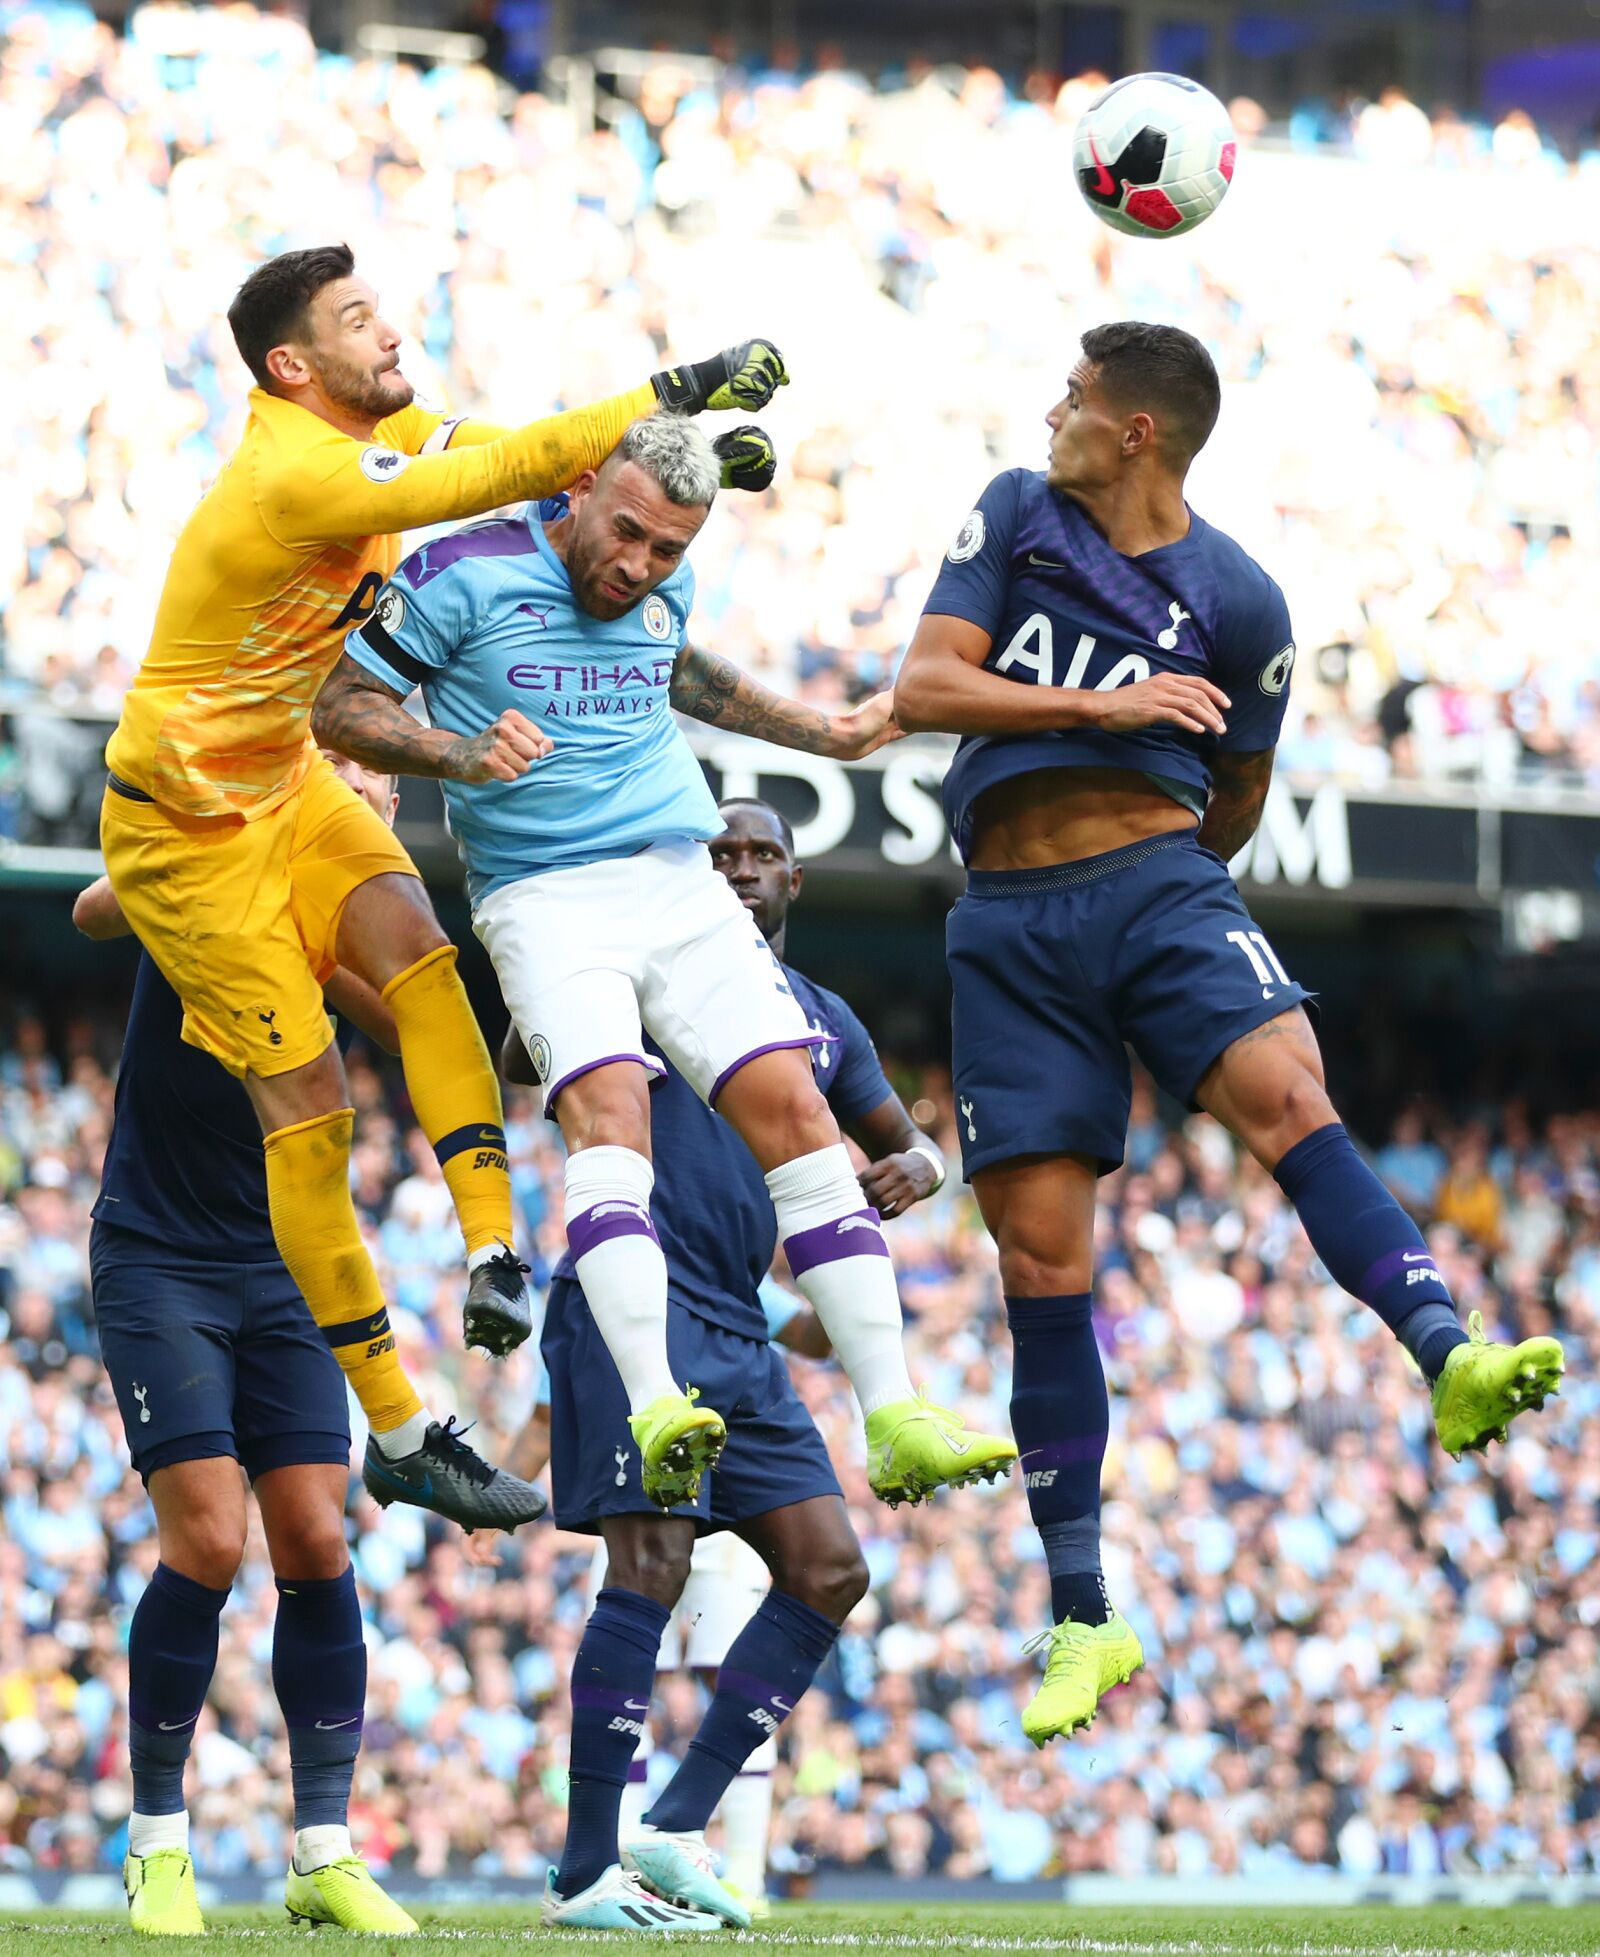 Tottenham Hotspur Top XI on form as of Matchday 4